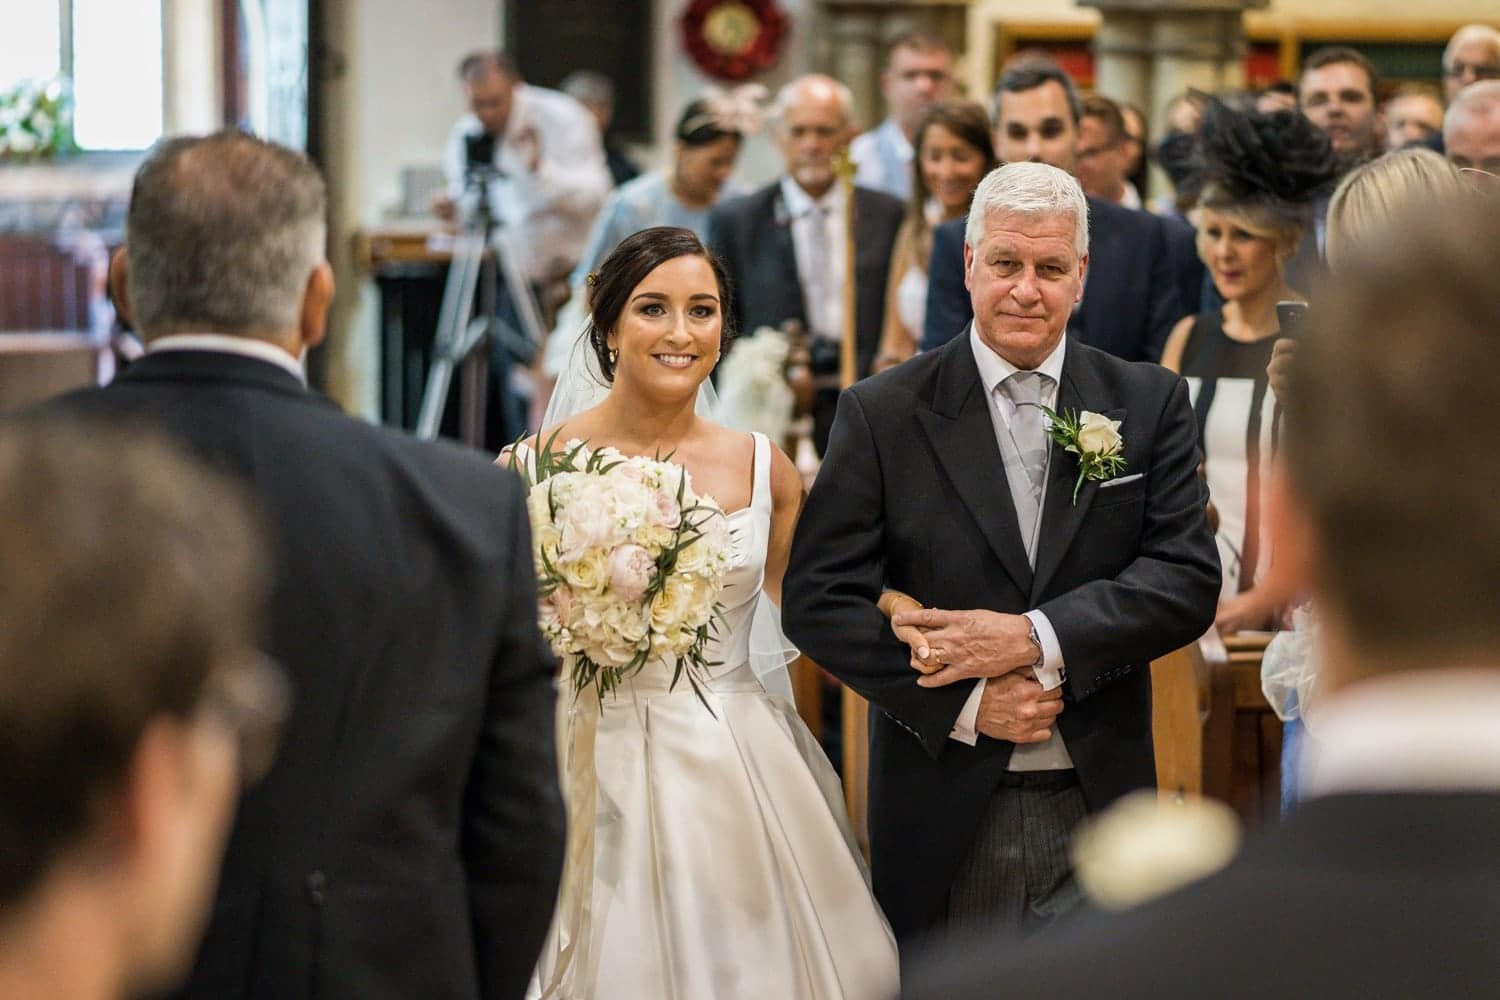 Wedding ceremony at St Isaan's Church in Llanishen, Cardiff